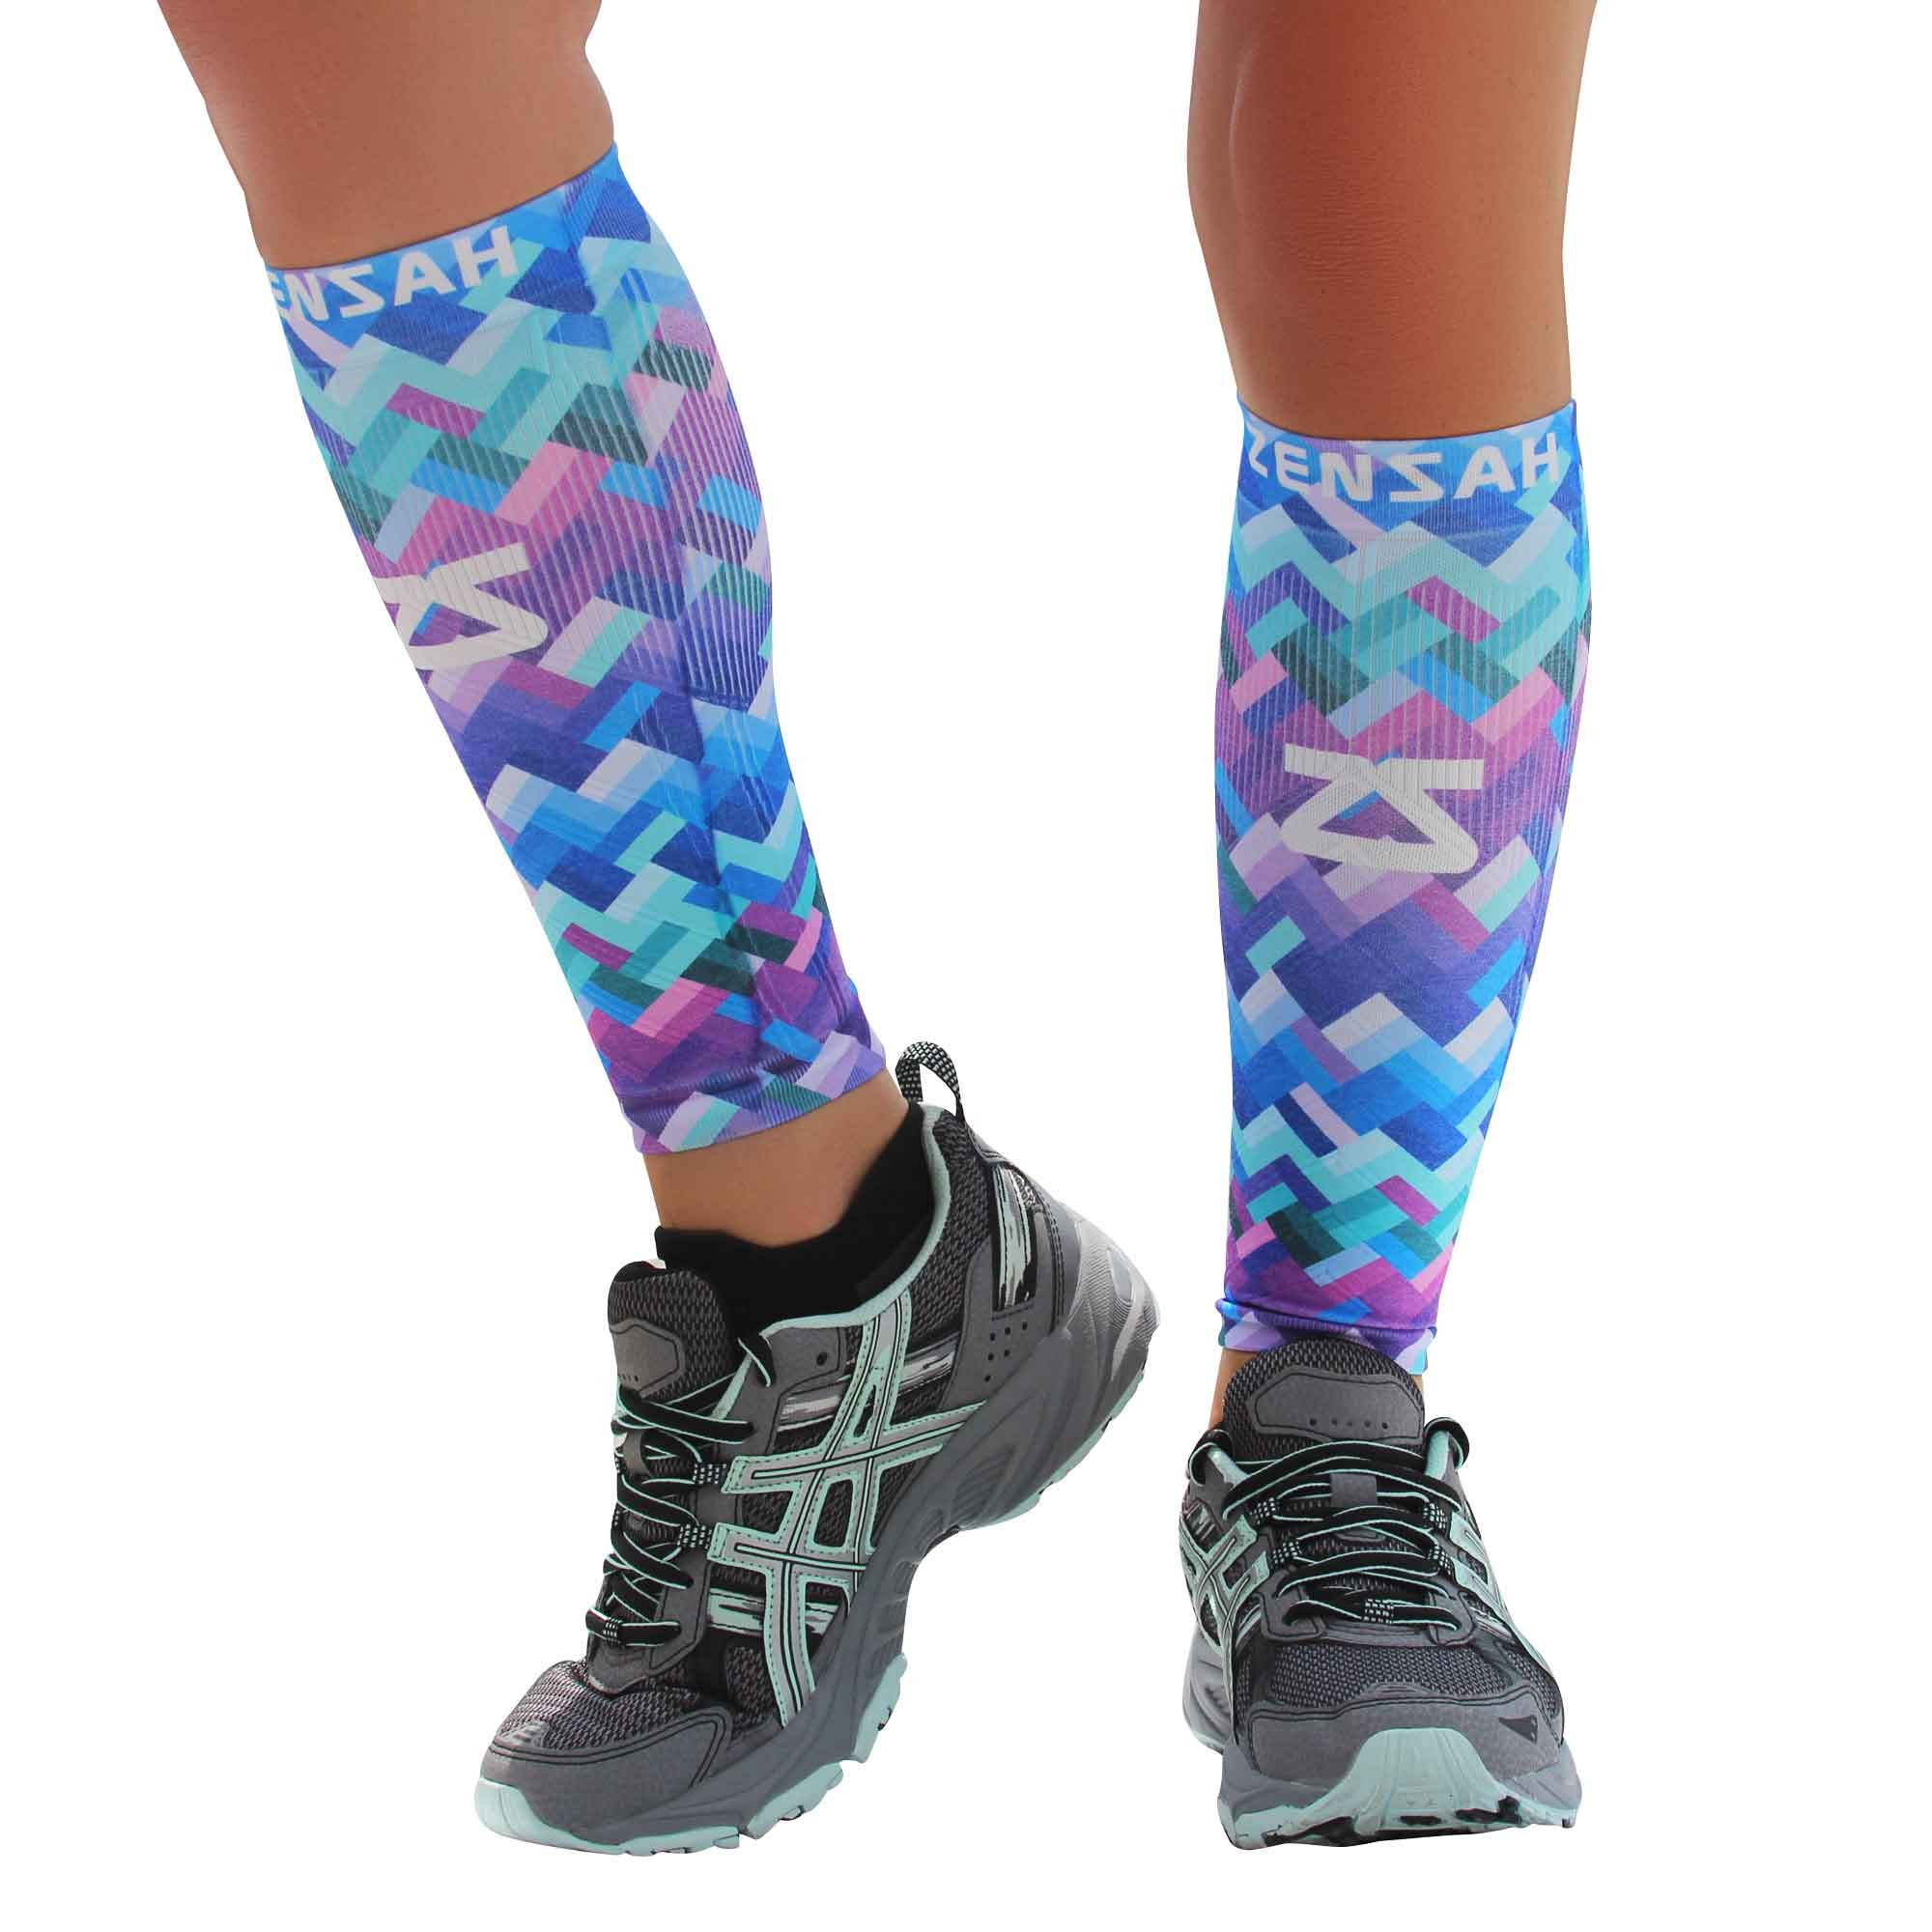 Zensah Design Limited Edition Leg Sleeves, Geo Waves, X-Small/Small